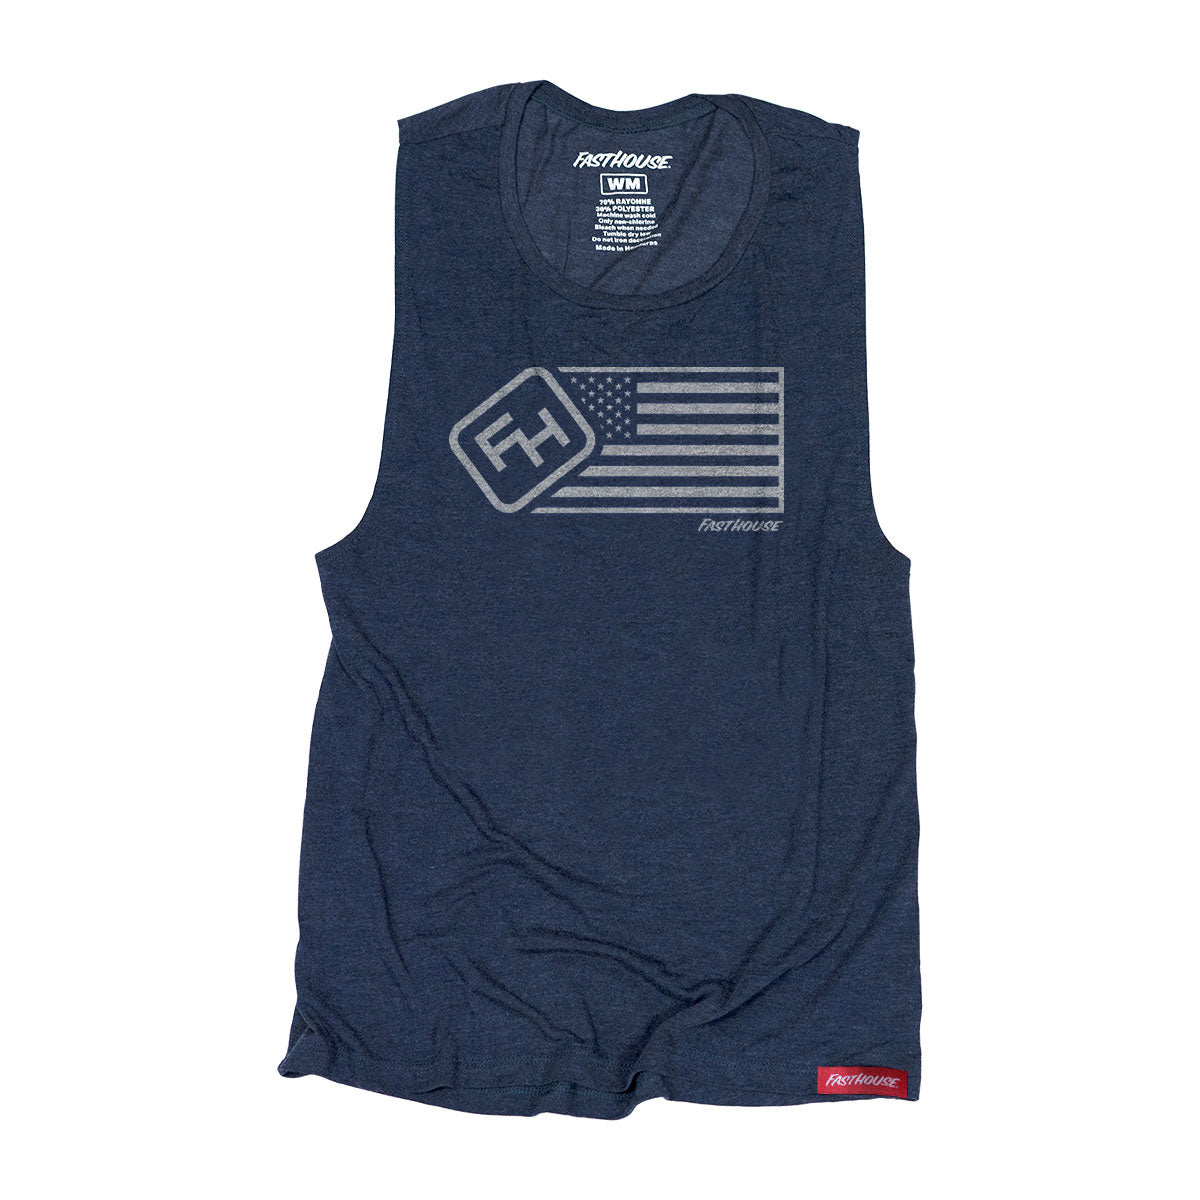 Fasthouse - USA Womens Muscle Tank - Antique Denim